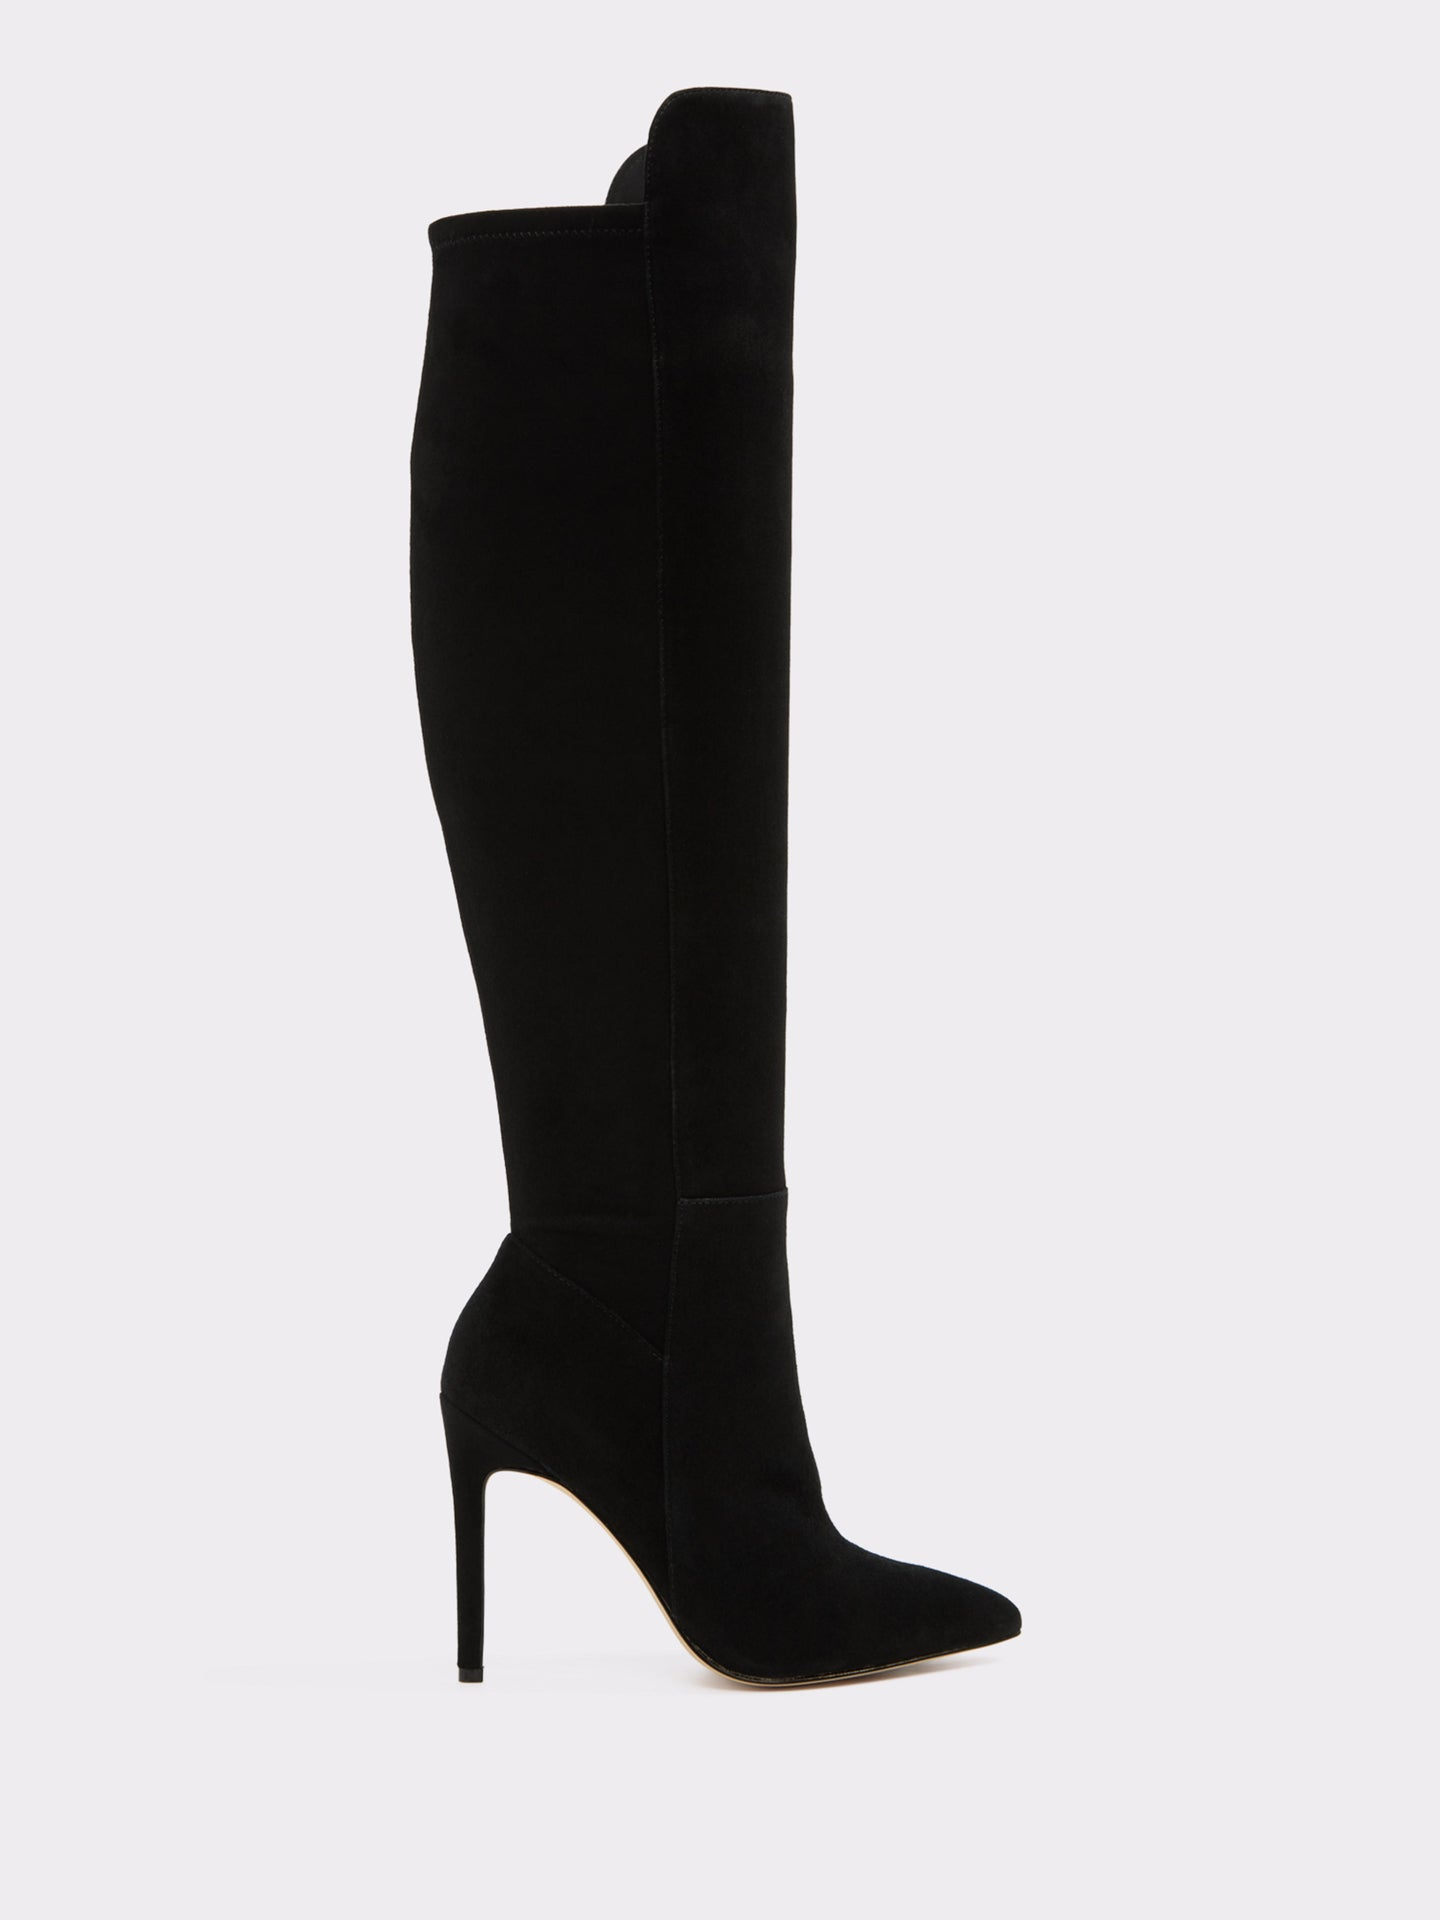 Aldo Black Suede Knee-High Boots